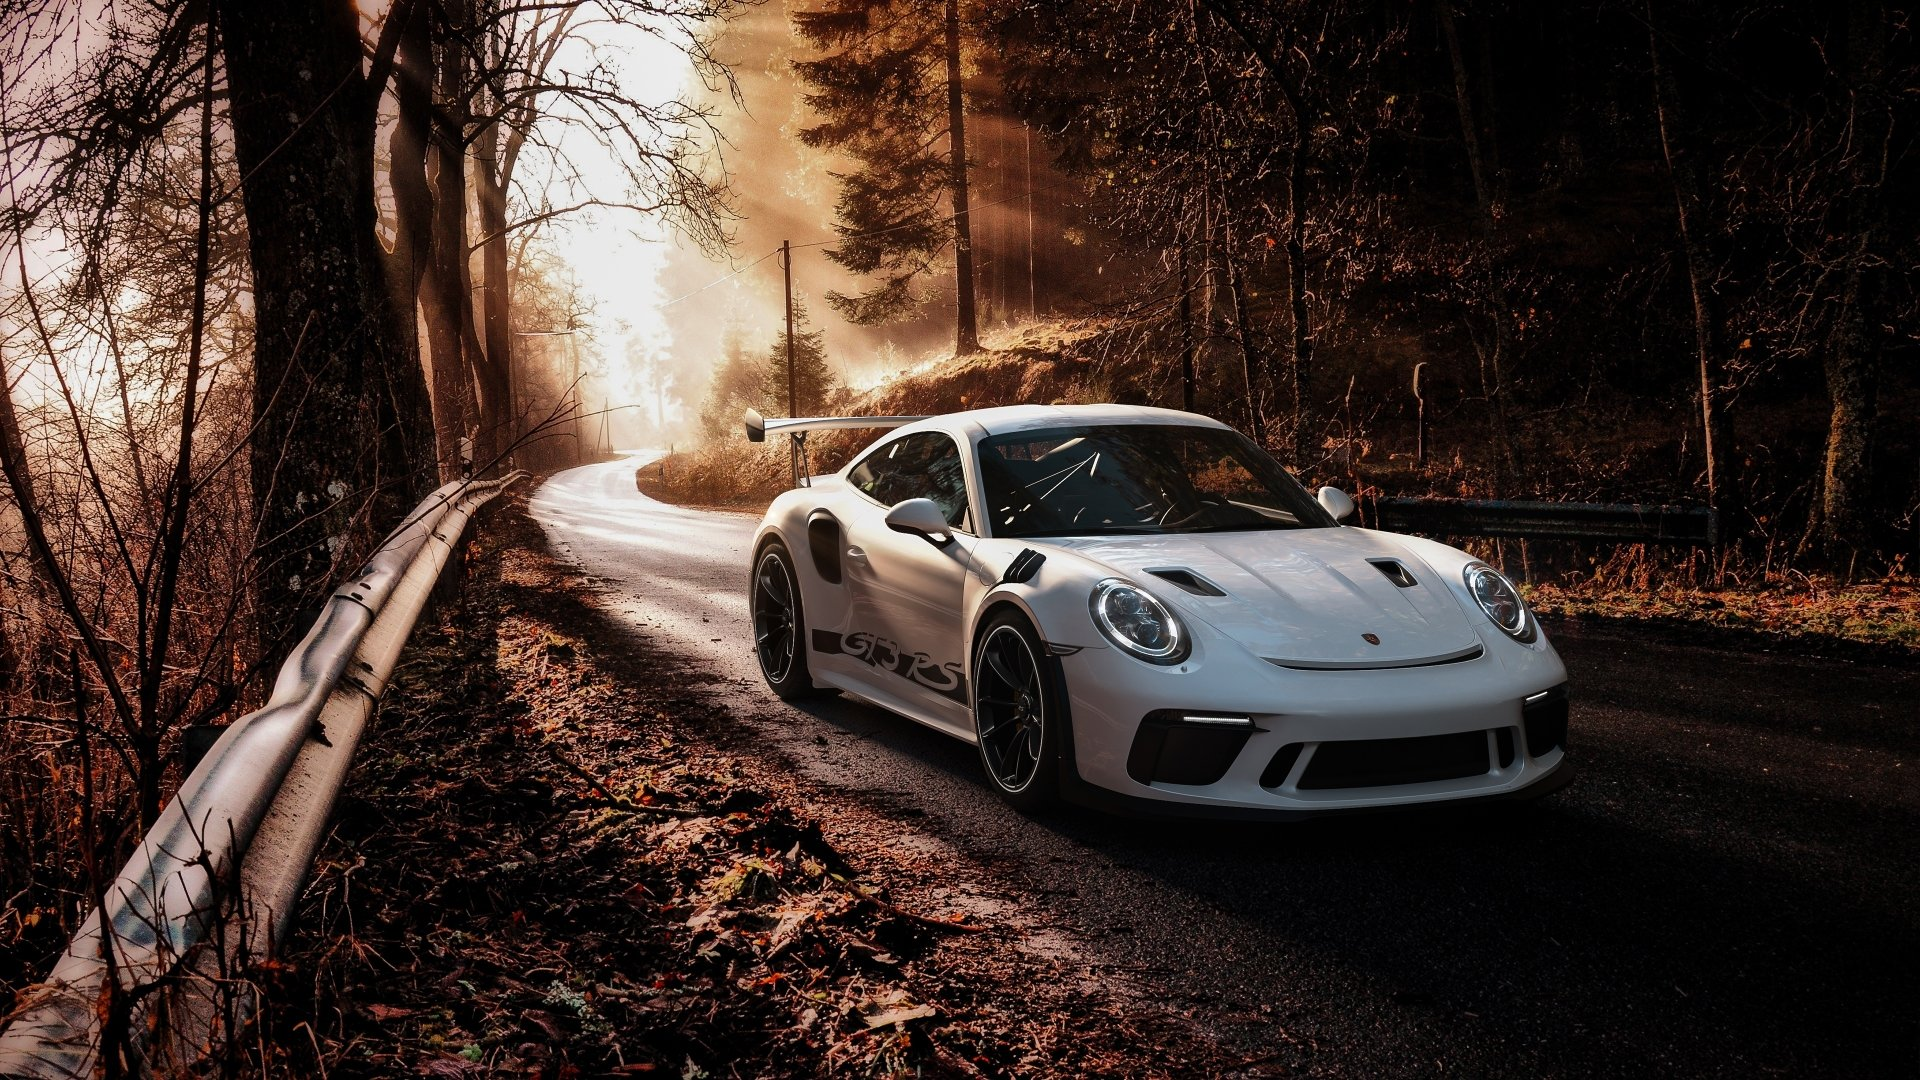 148 Porsche 911 Gt3 Hd Wallpapers Background Images Wallpaper Abyss